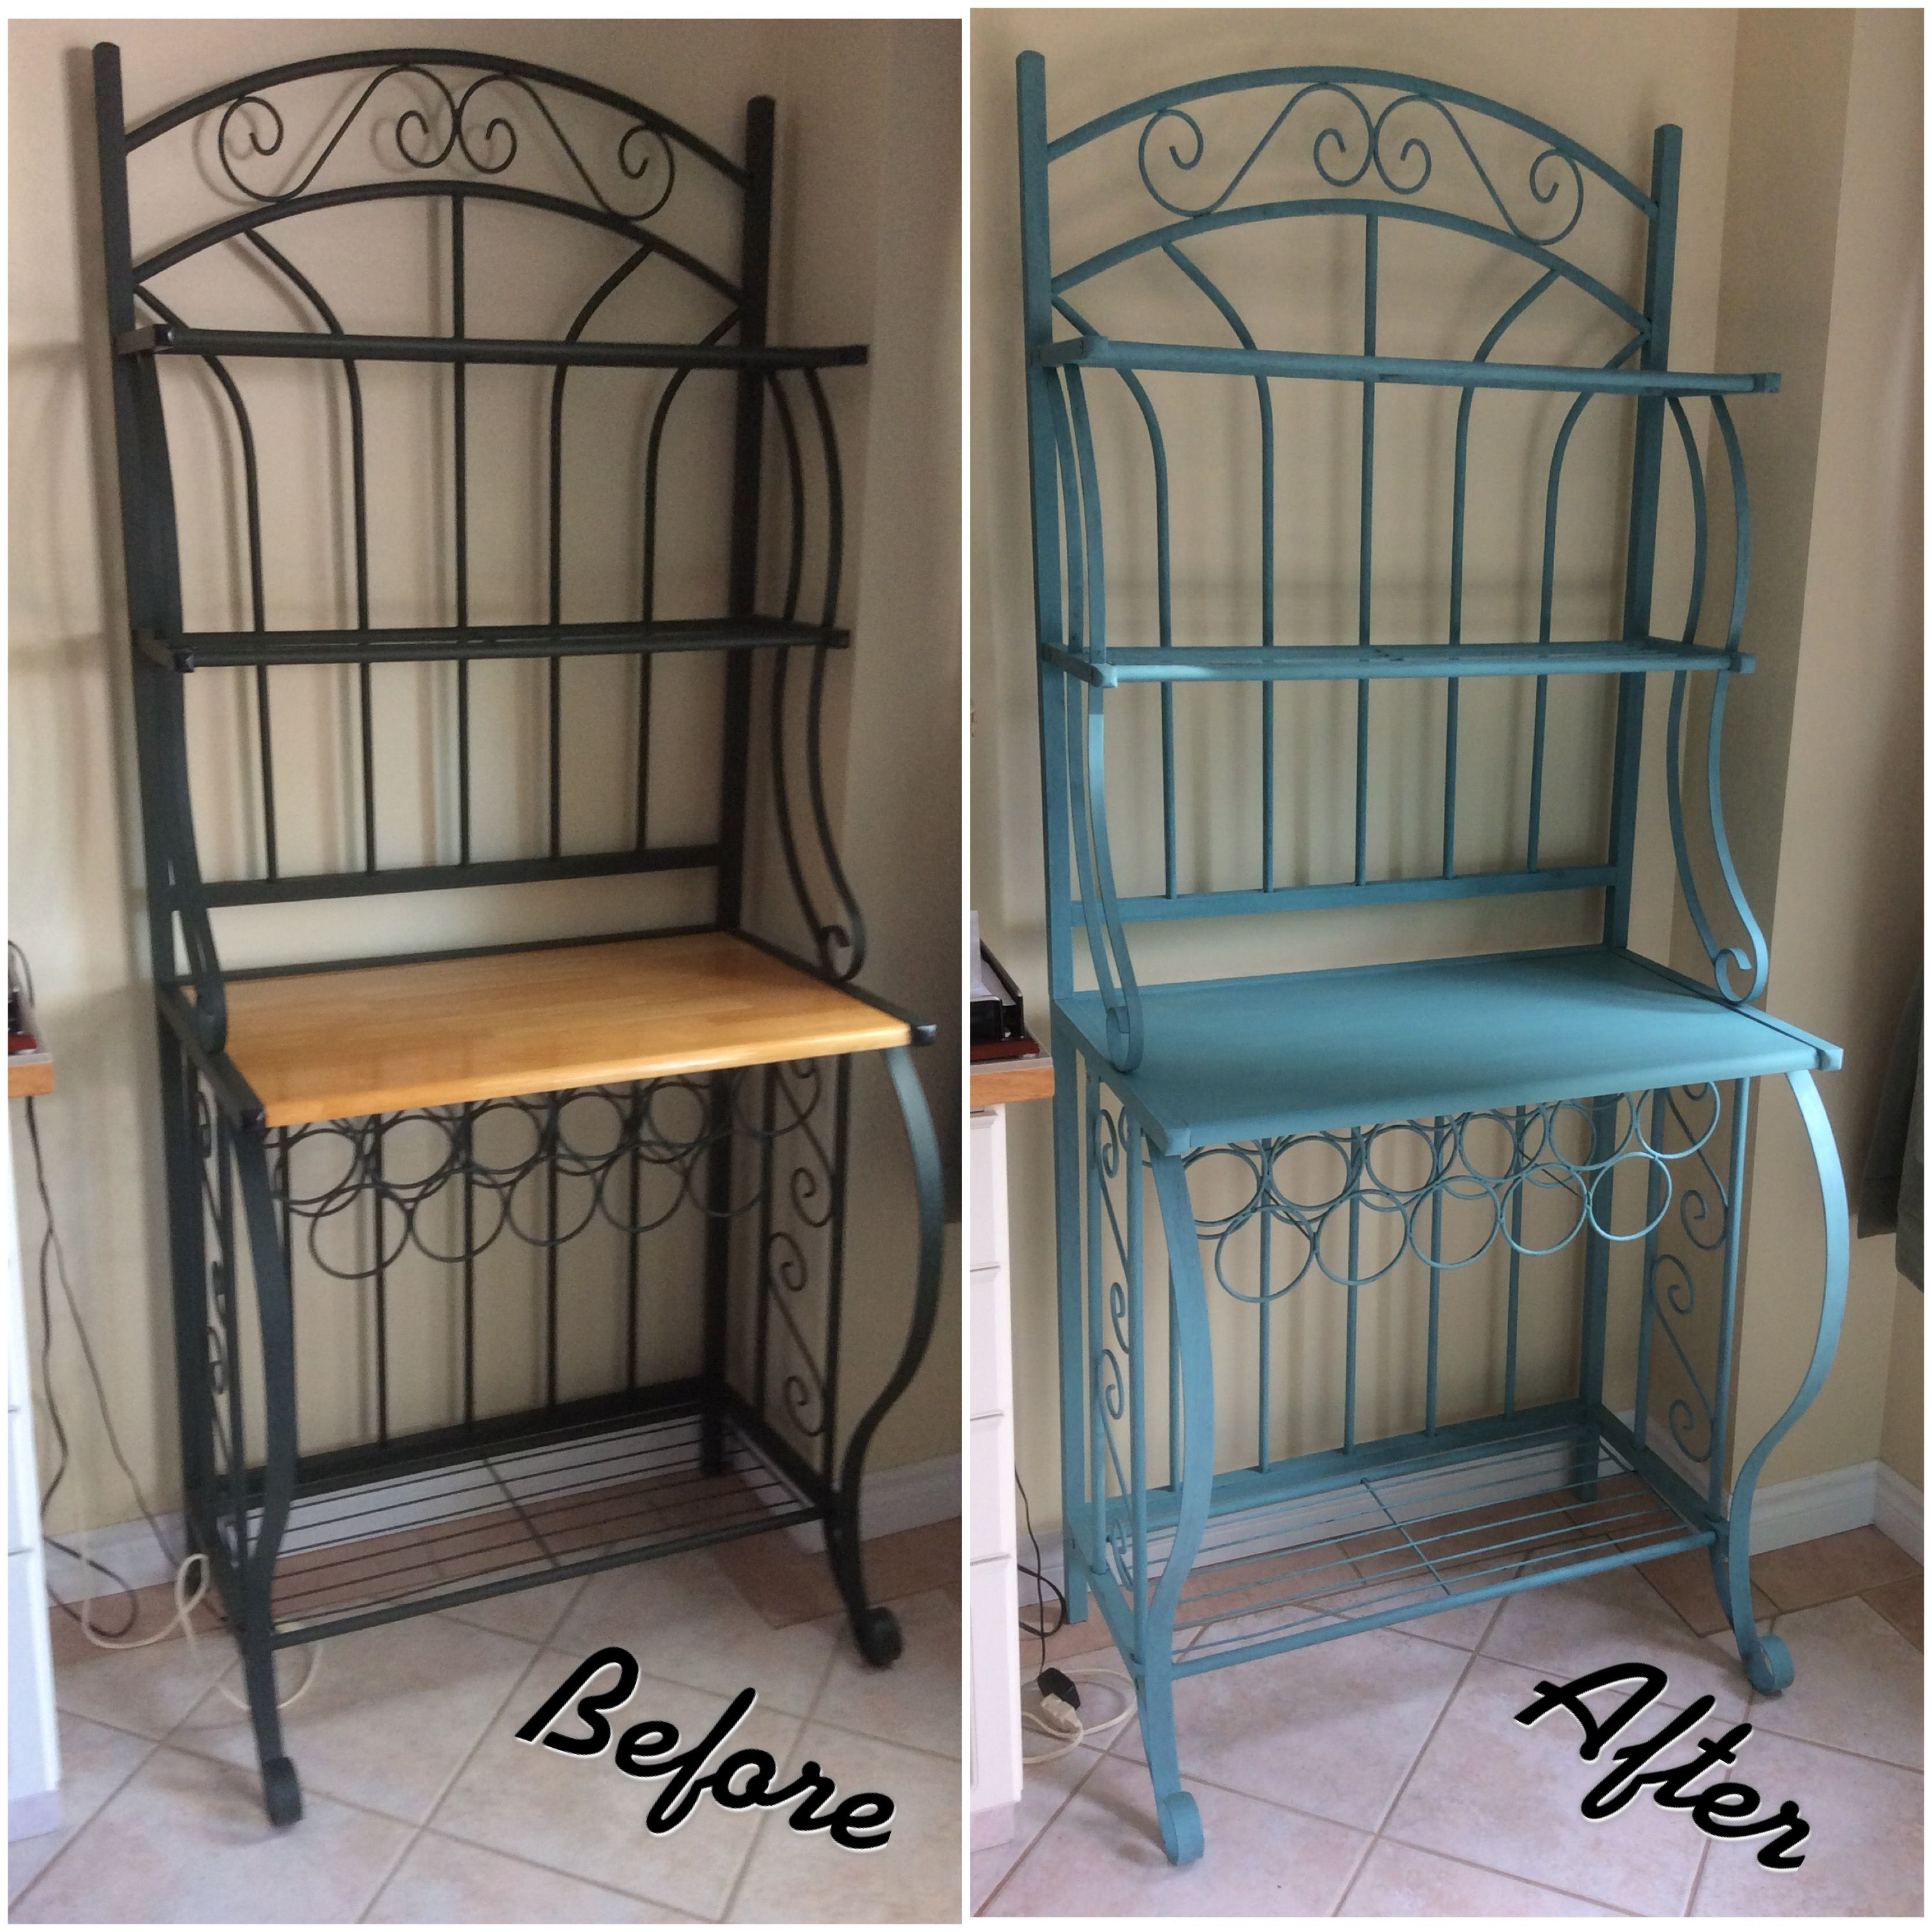 Bakers rack decorating ideas - Bakers Rack Makeover Using Chalky Finish Paint In French Teal